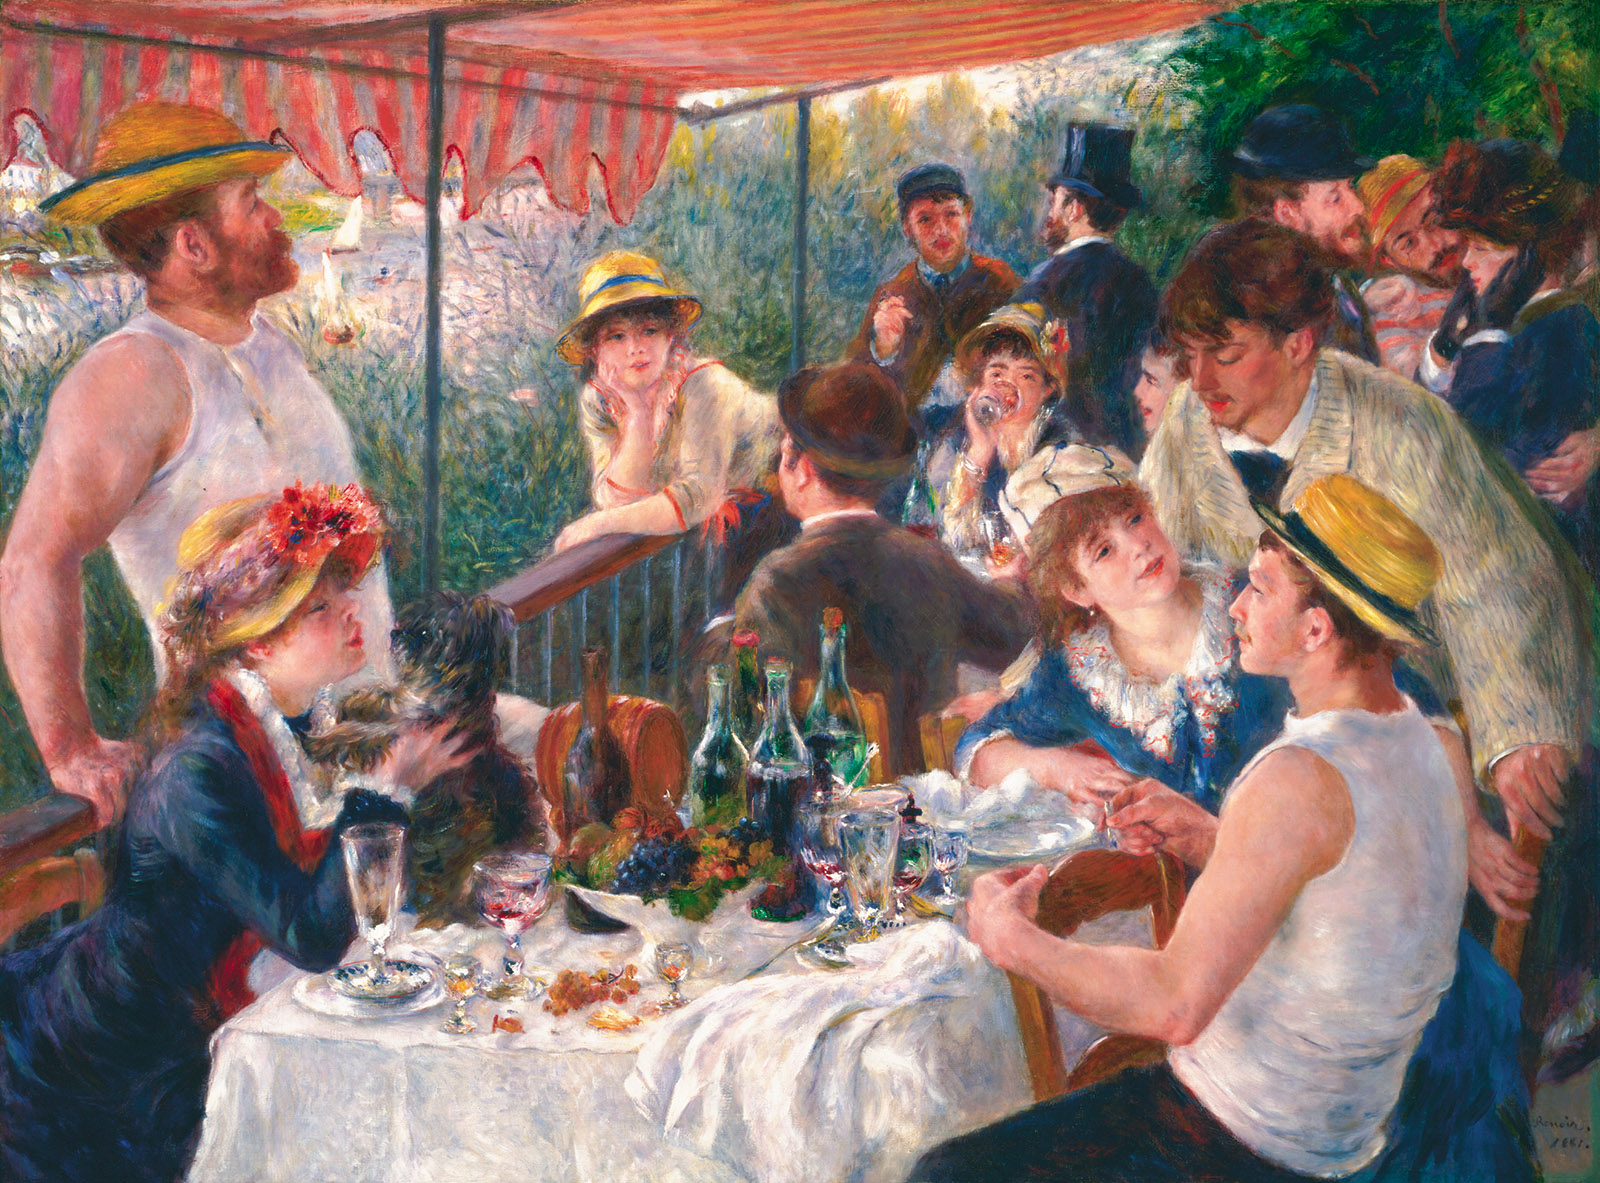 Pierre-August Renoir: Luncheon of the Boating Party, 1880–1881